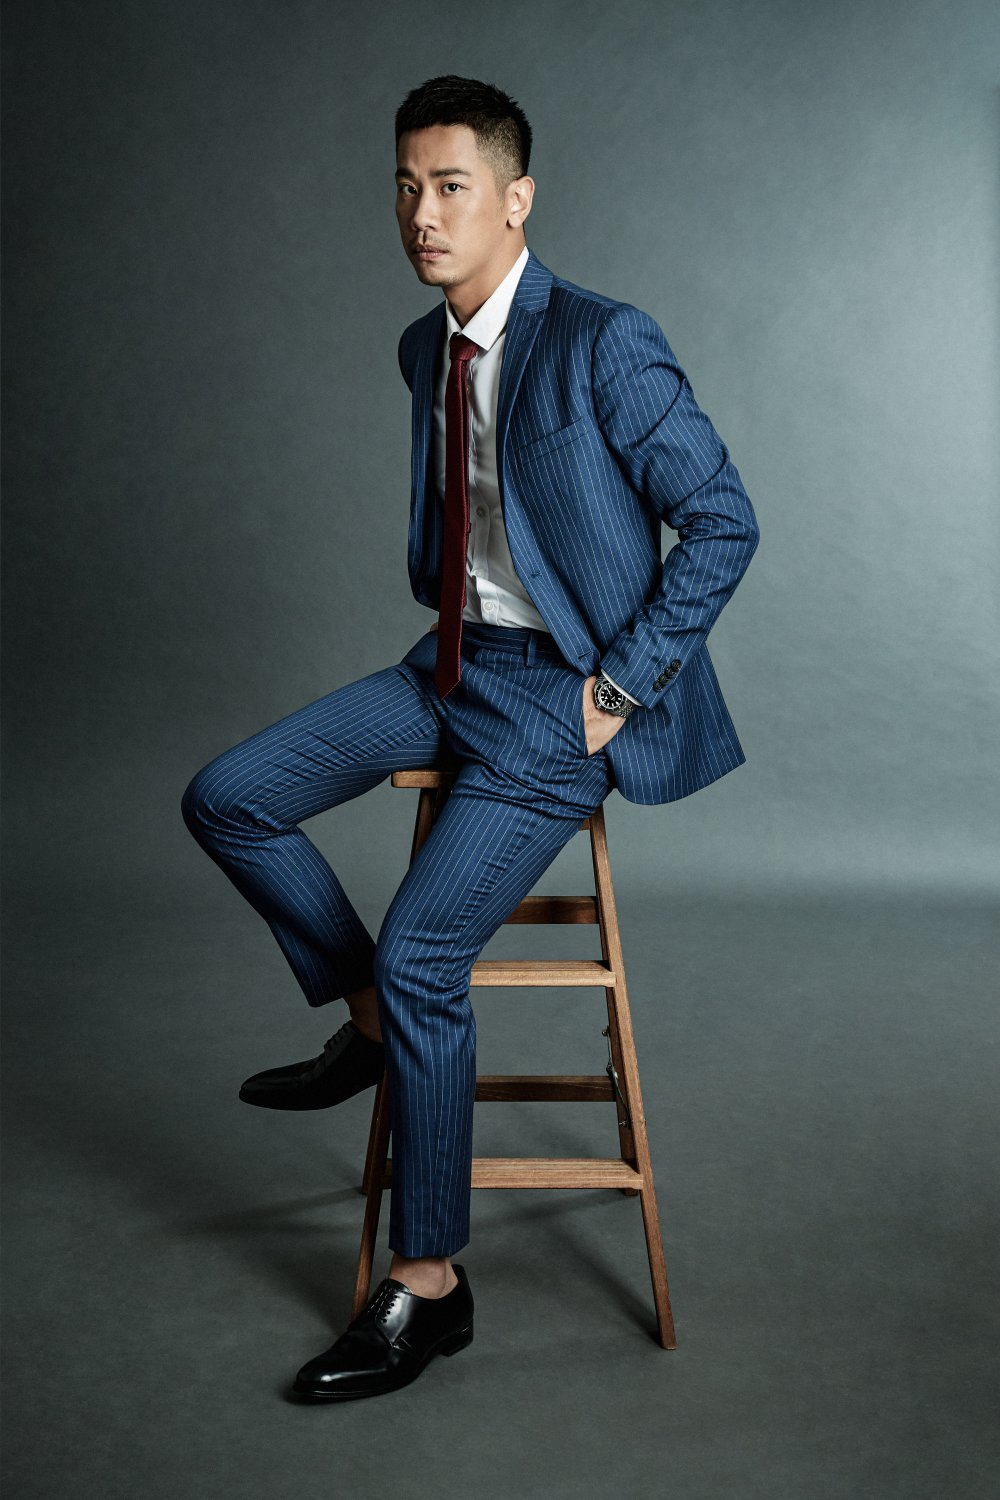 kingssleeve interview WeiPeow Tan founder power tank suit - Wei Peow Tan: Success is Dependent on Passion and Patience